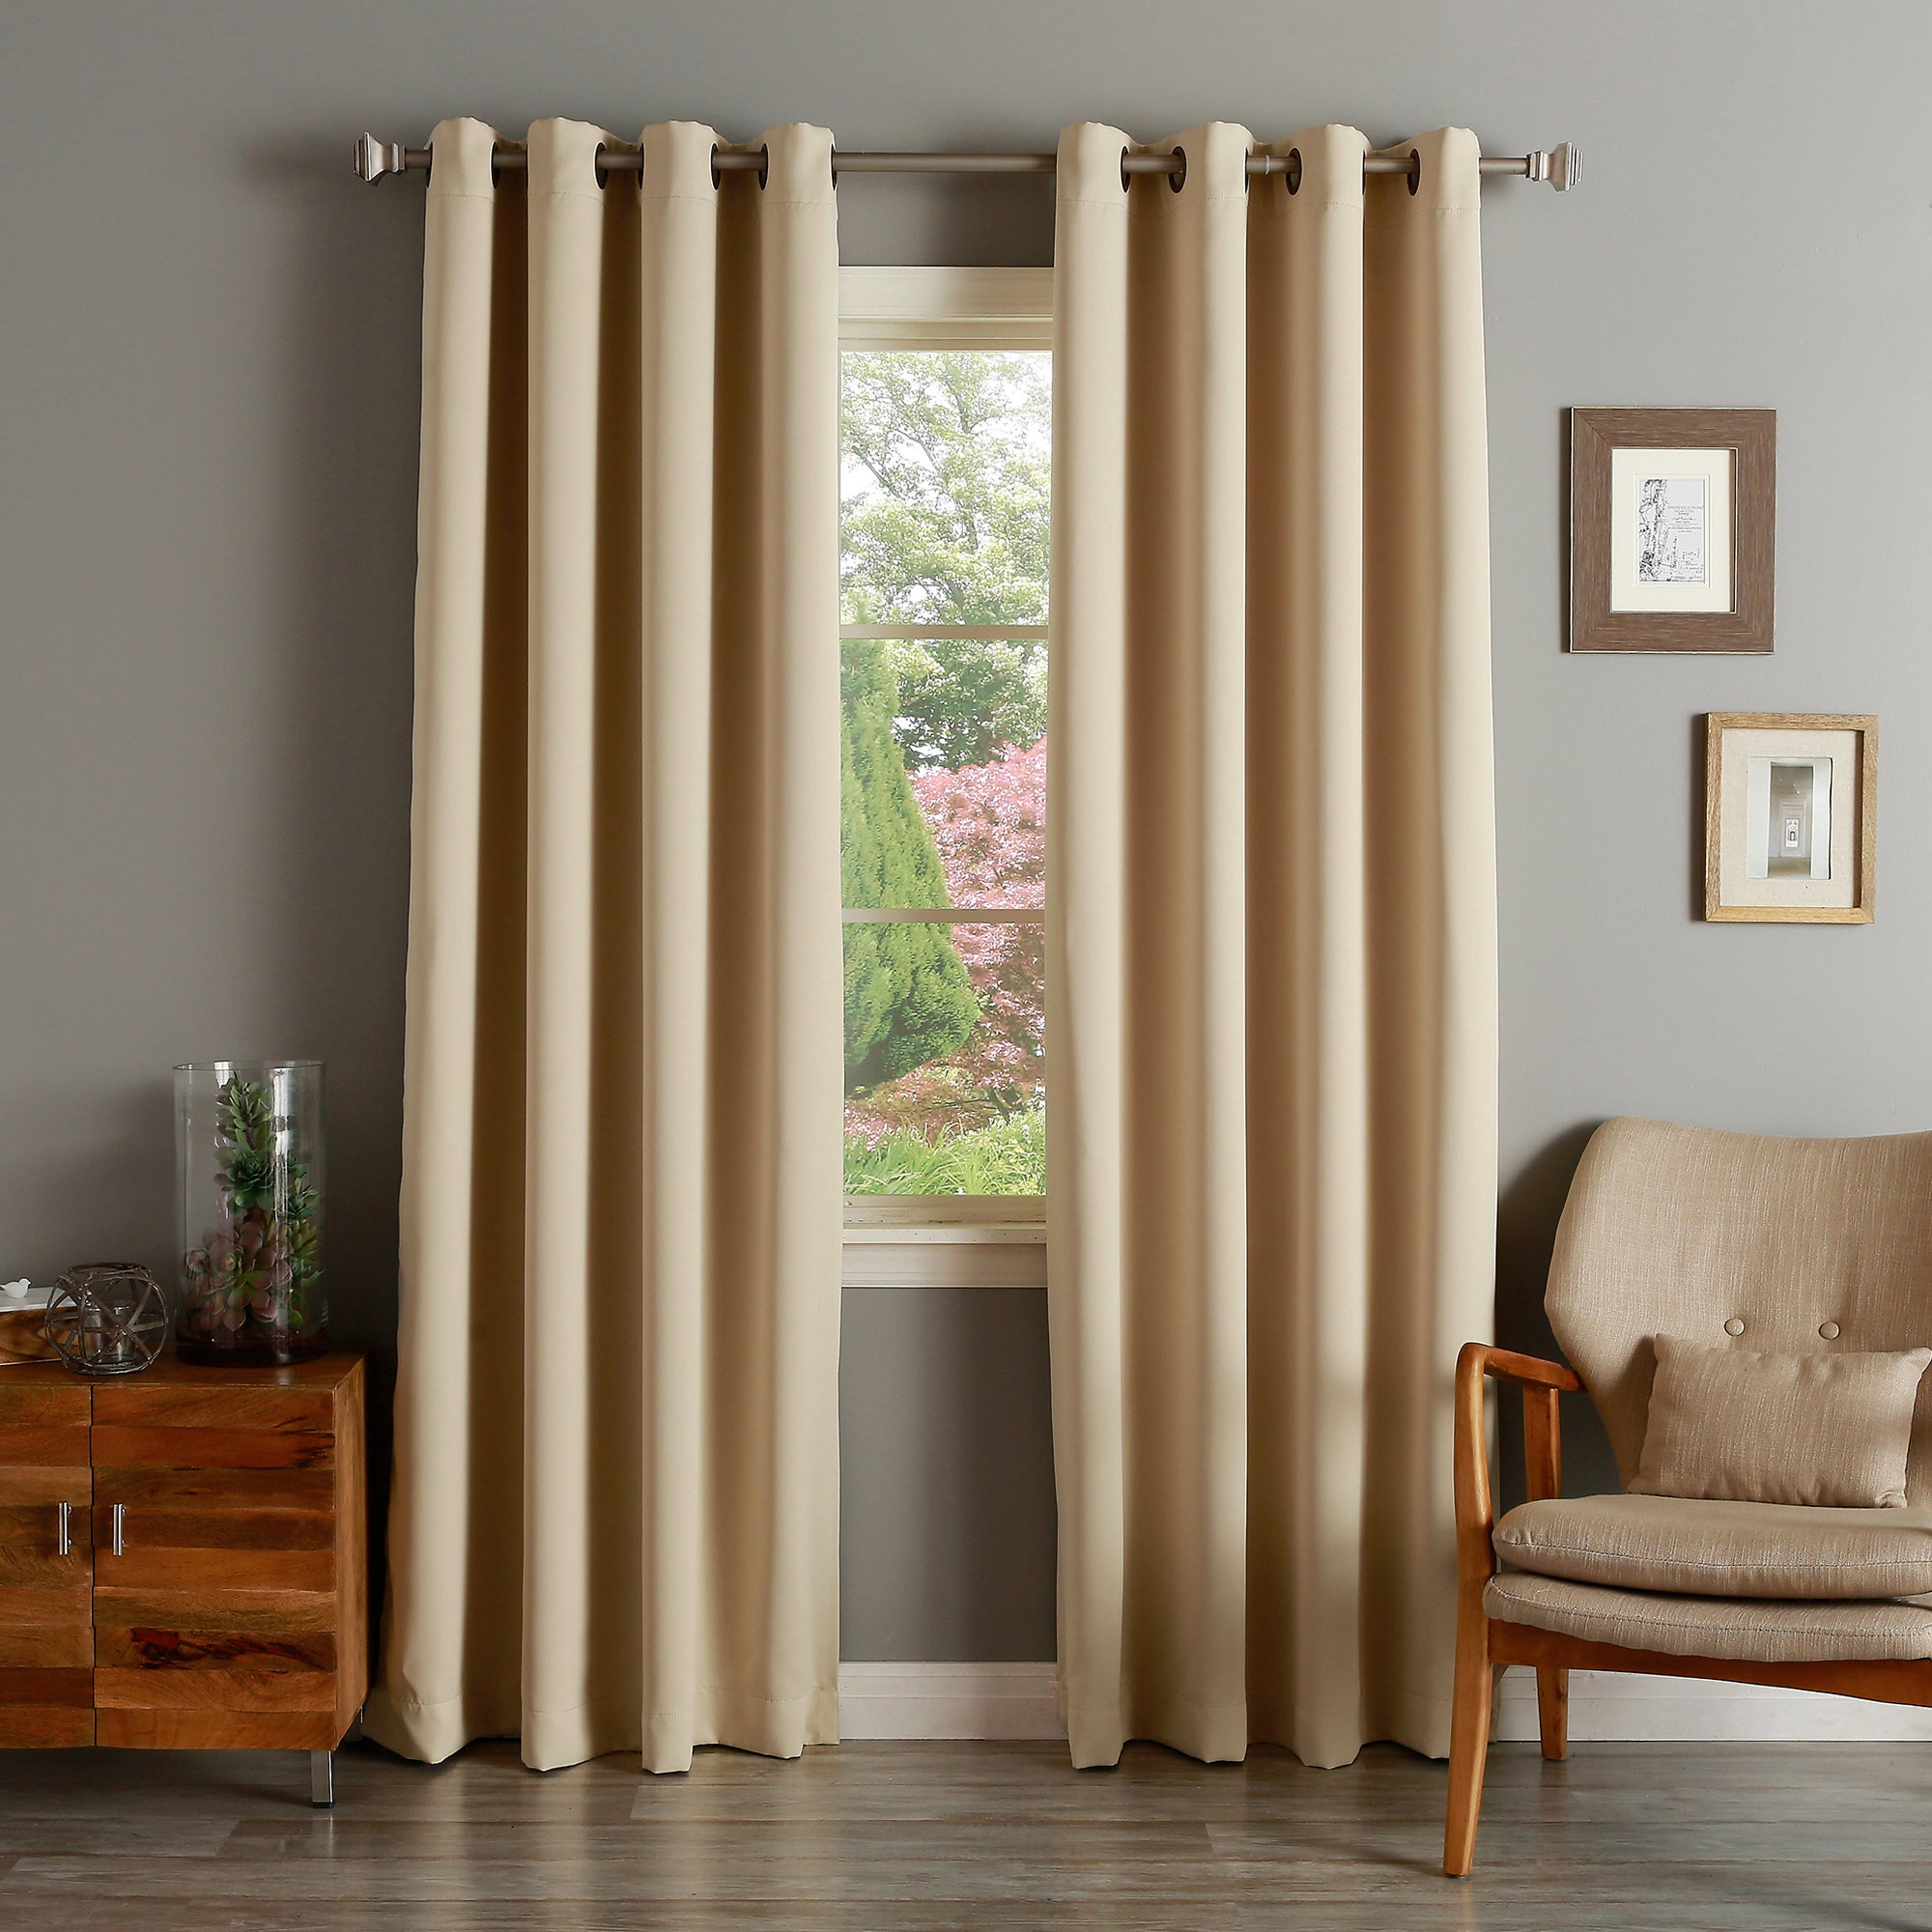 Aurora Home Solid Grommet Top Thermal Insulated 108 Inch Blackout Curtain Panel Pair Intended For Thermal Insulated Blackout Curtain Pairs (View 12 of 30)